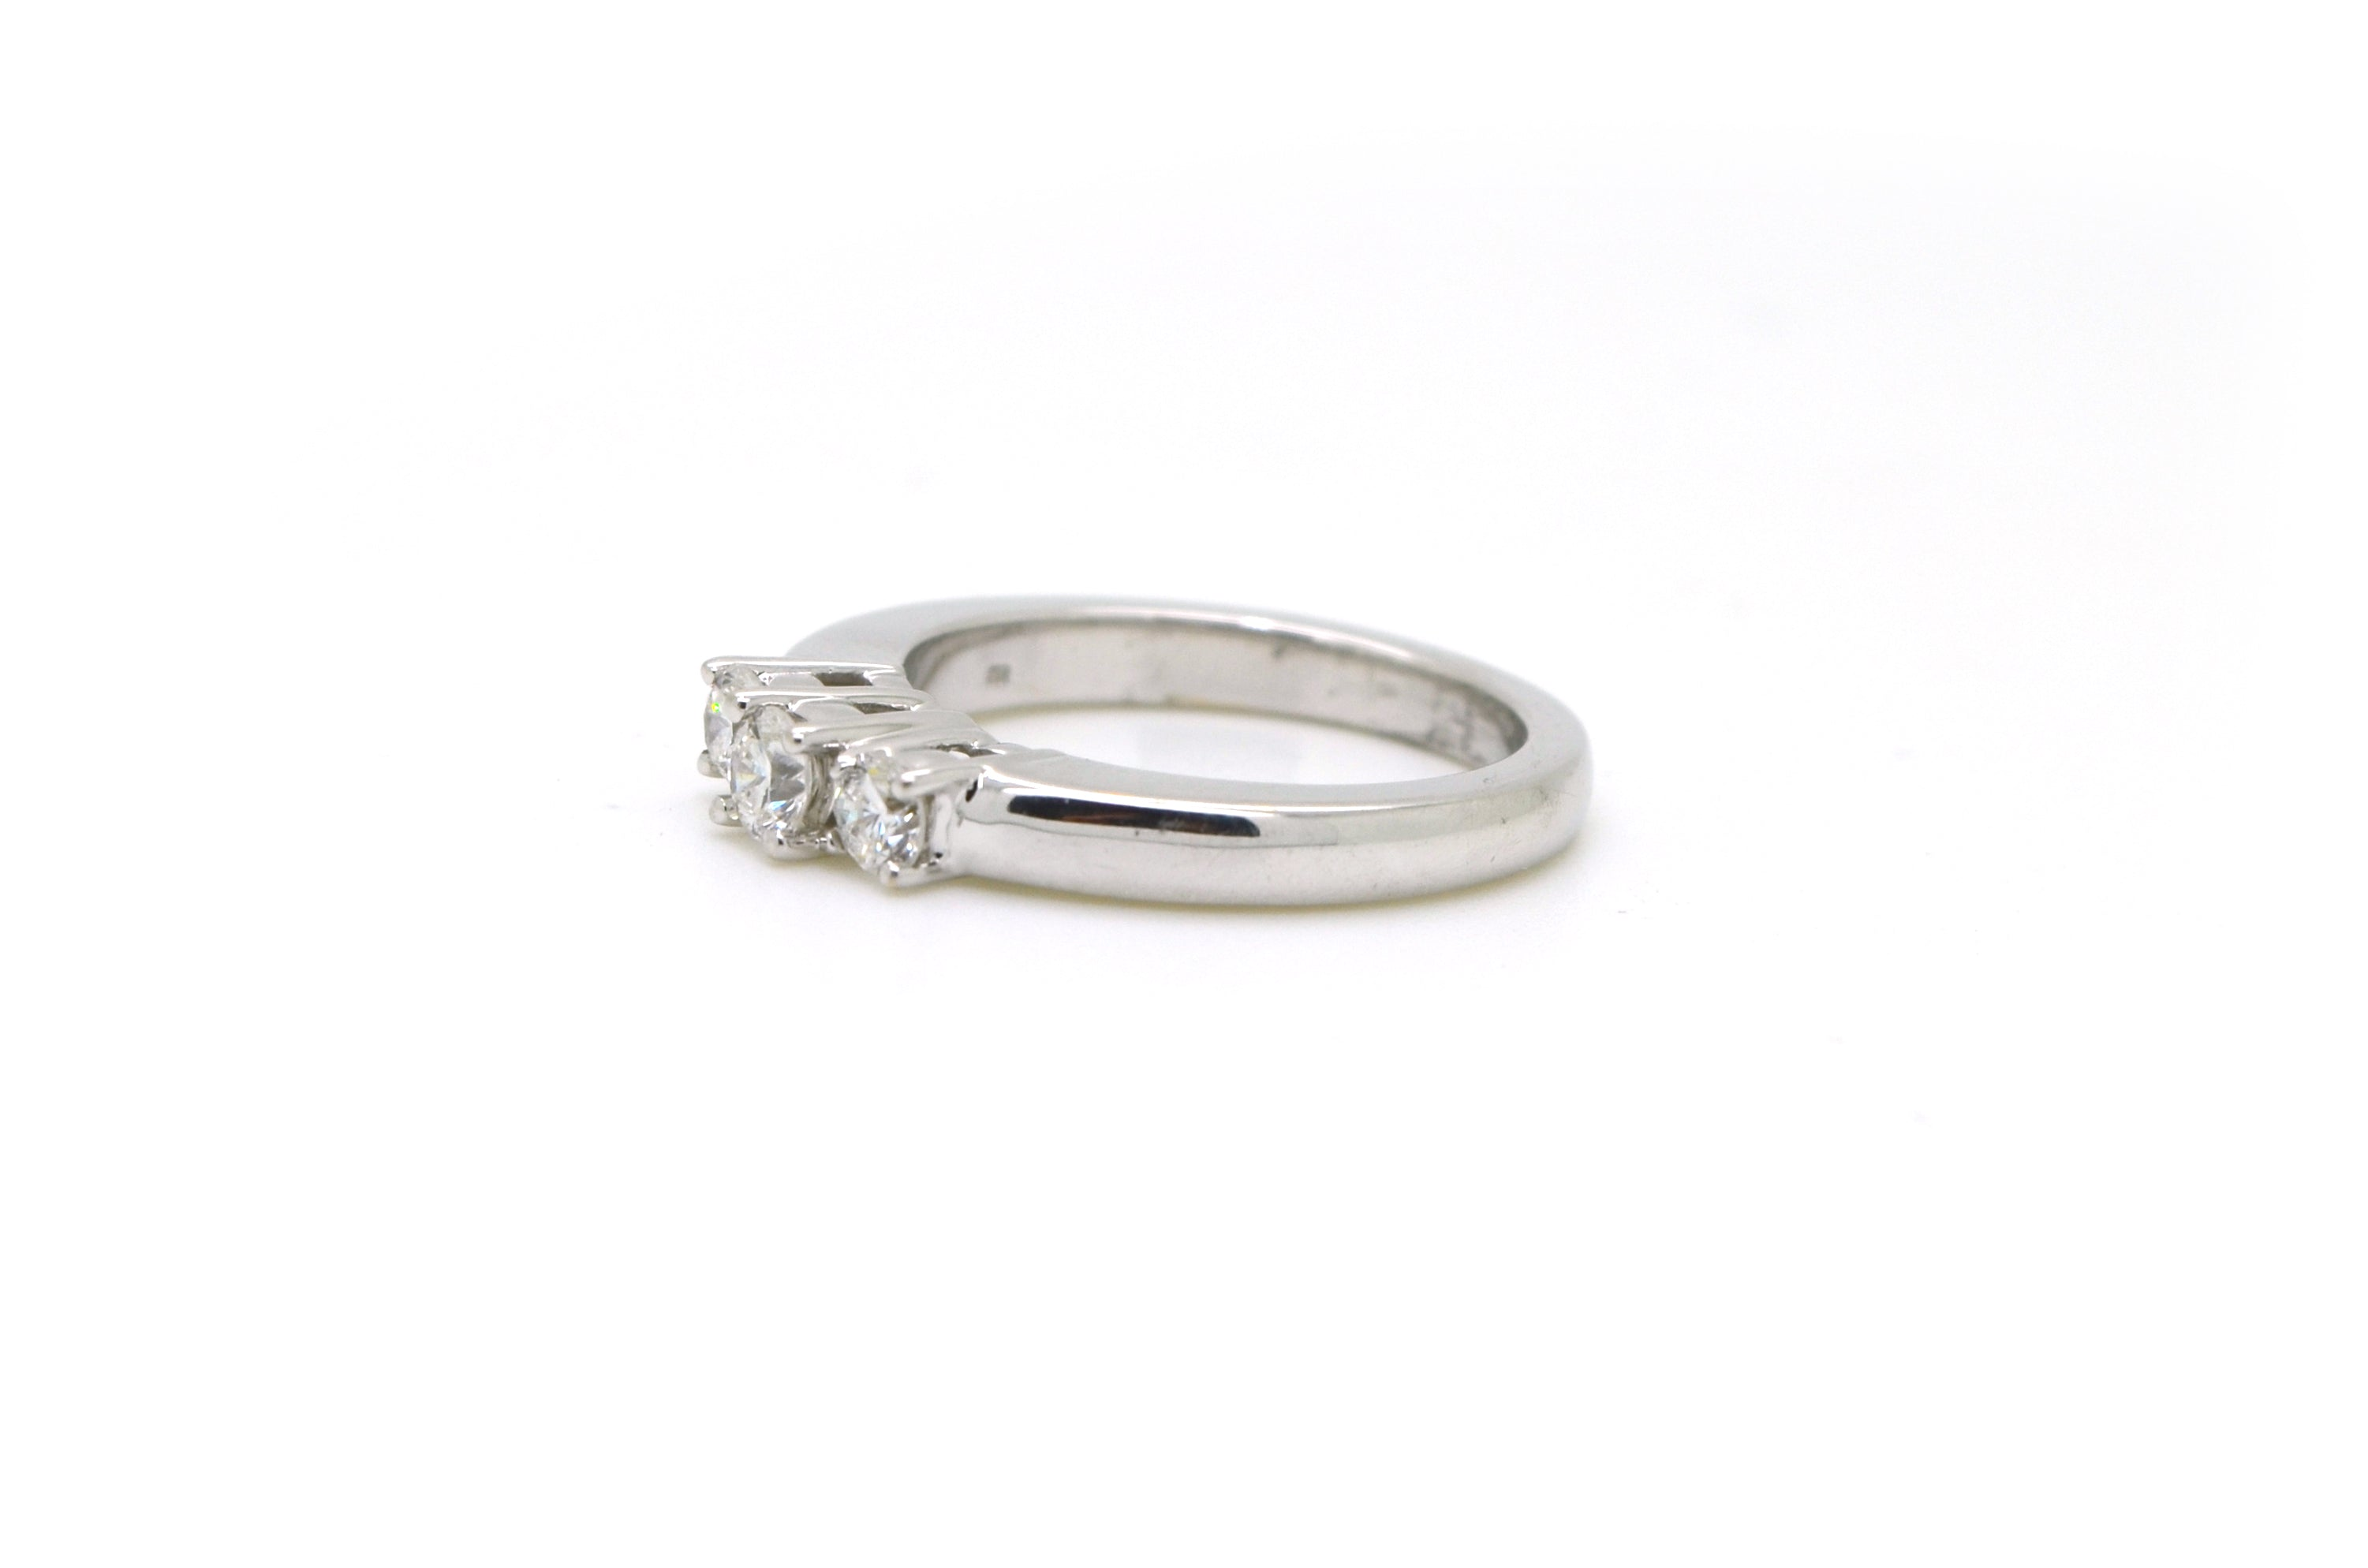 14k White Gold Round Diamond 3-stone Engagement Ring - .50 ct. total - Size 6.5